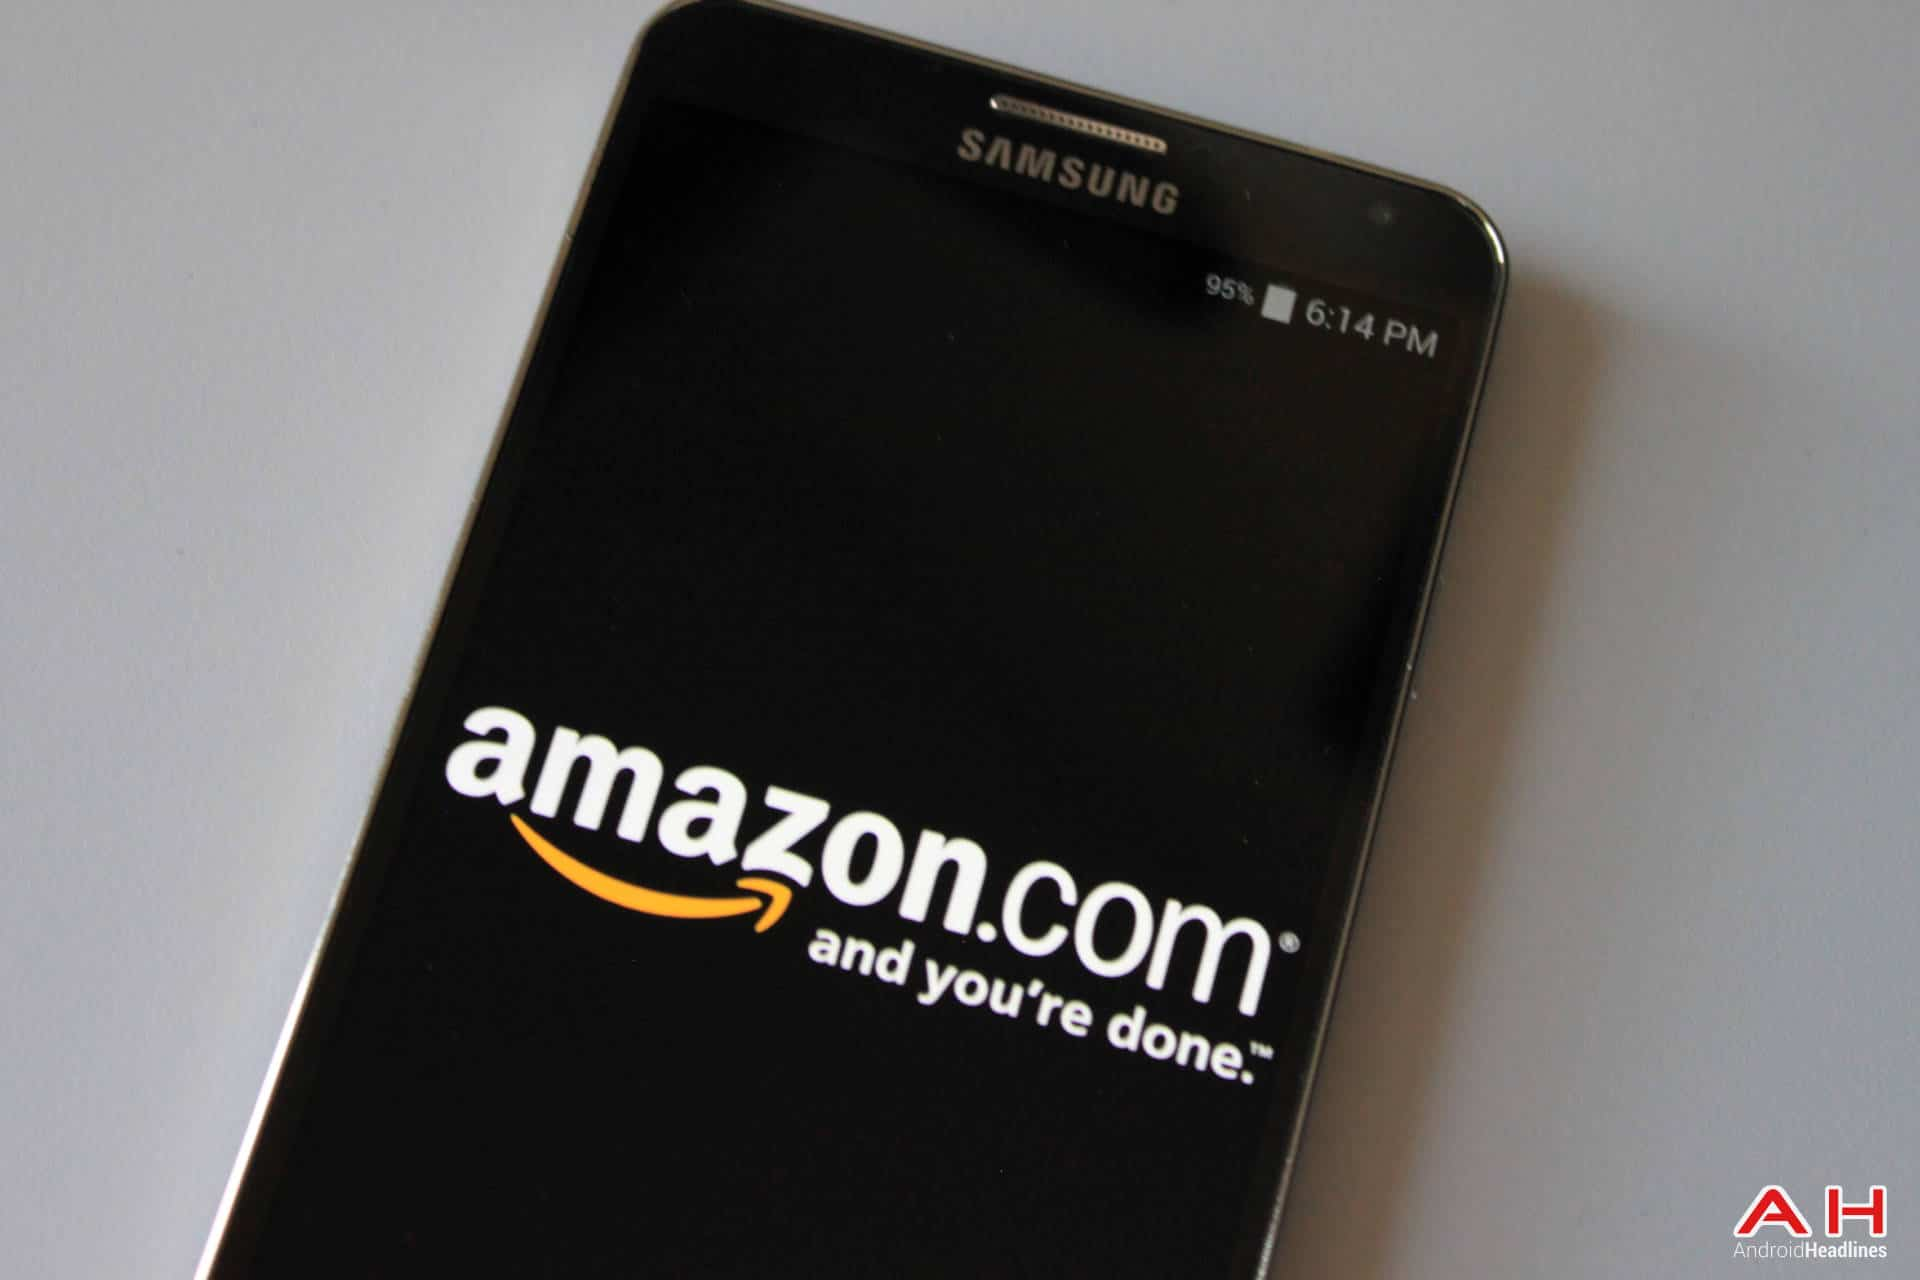 Amazon Launches Its Own Wallet App to Compete With Google and PayPal